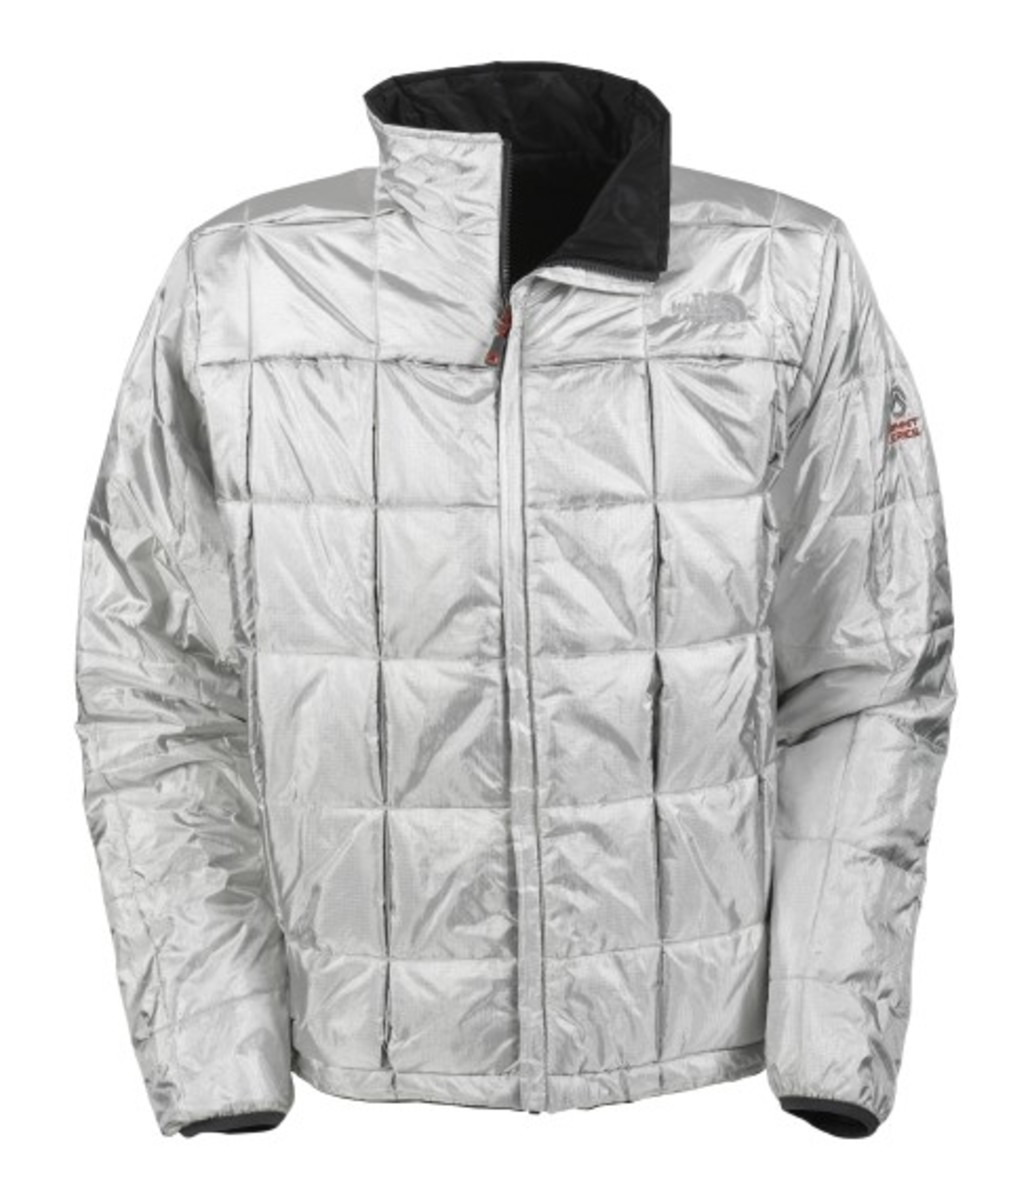 The North Face - Mercurial Jacket - 0